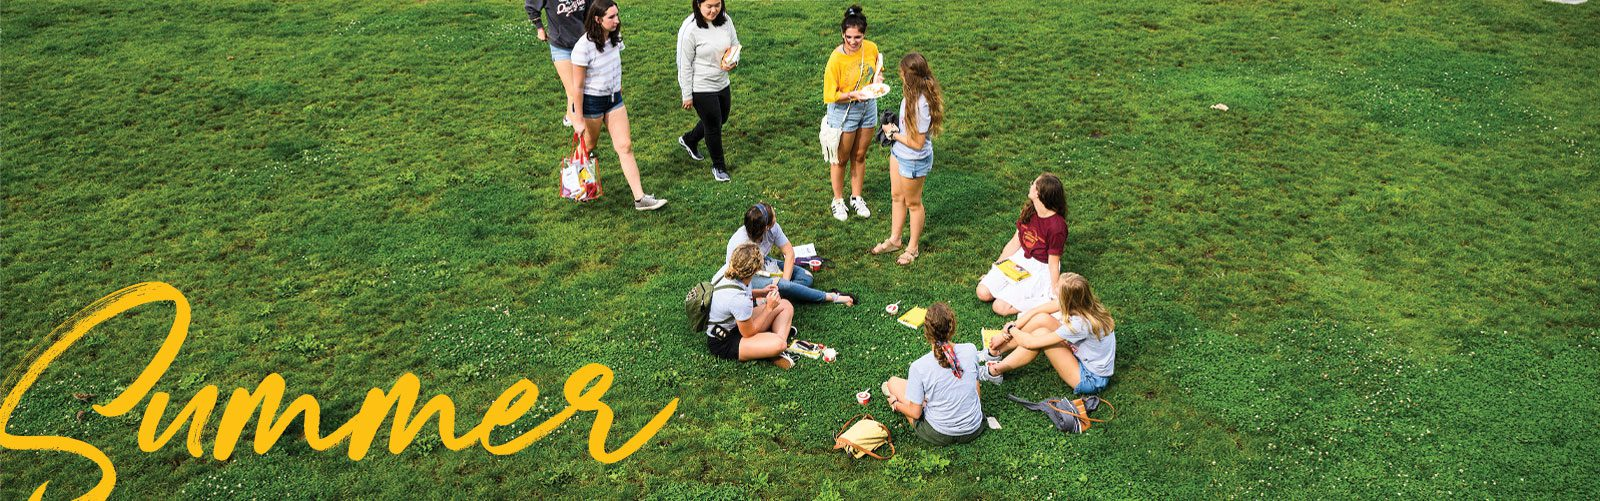 Summer students sitting on grass